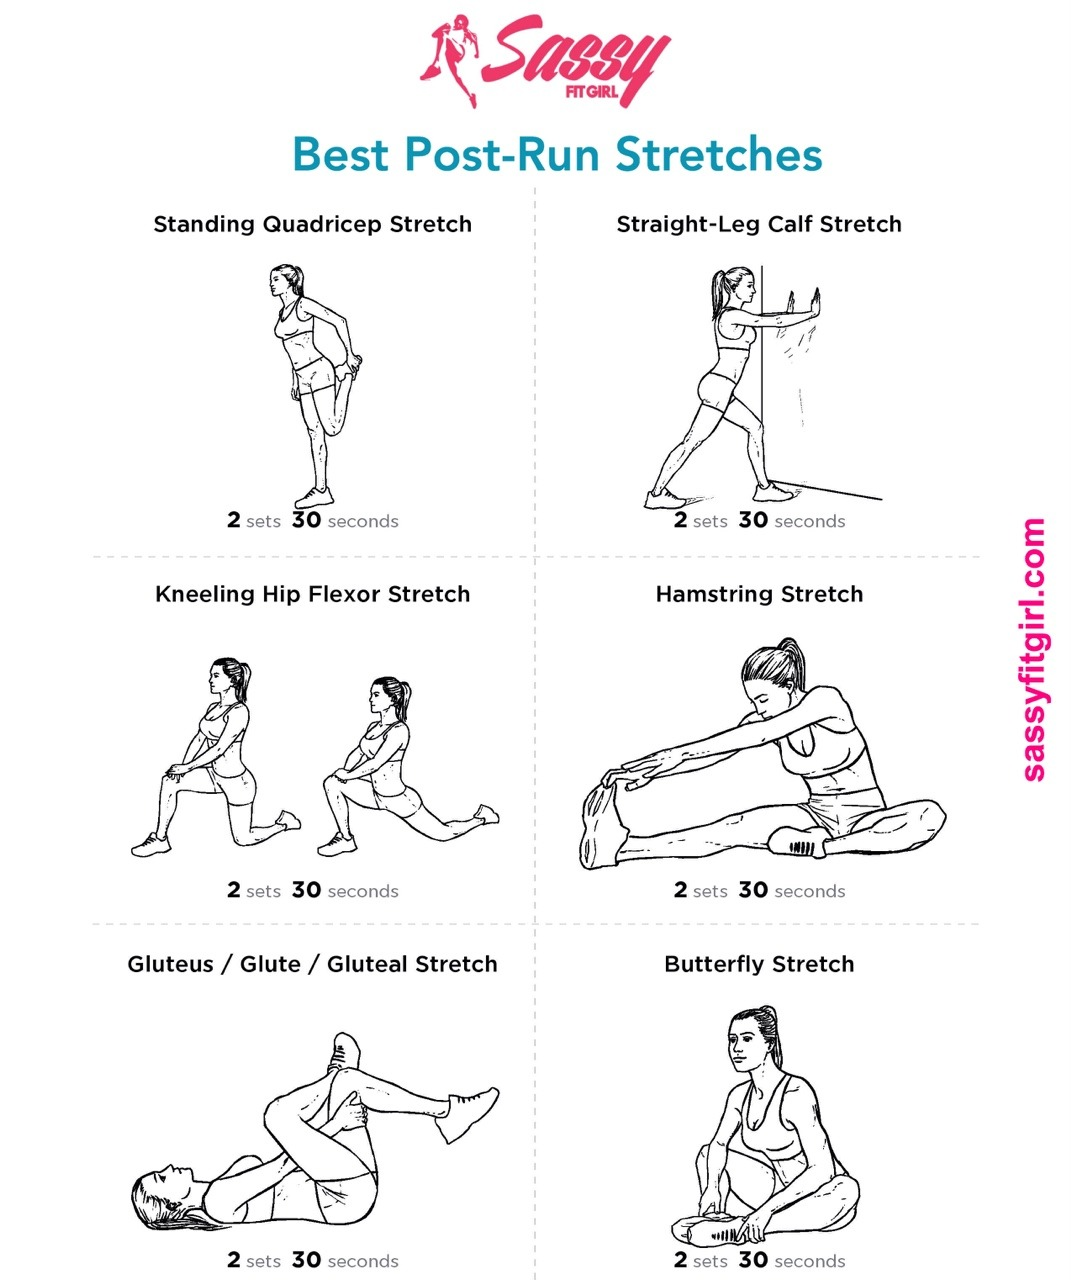 Best Post-Run Stretches Stretching after a run is